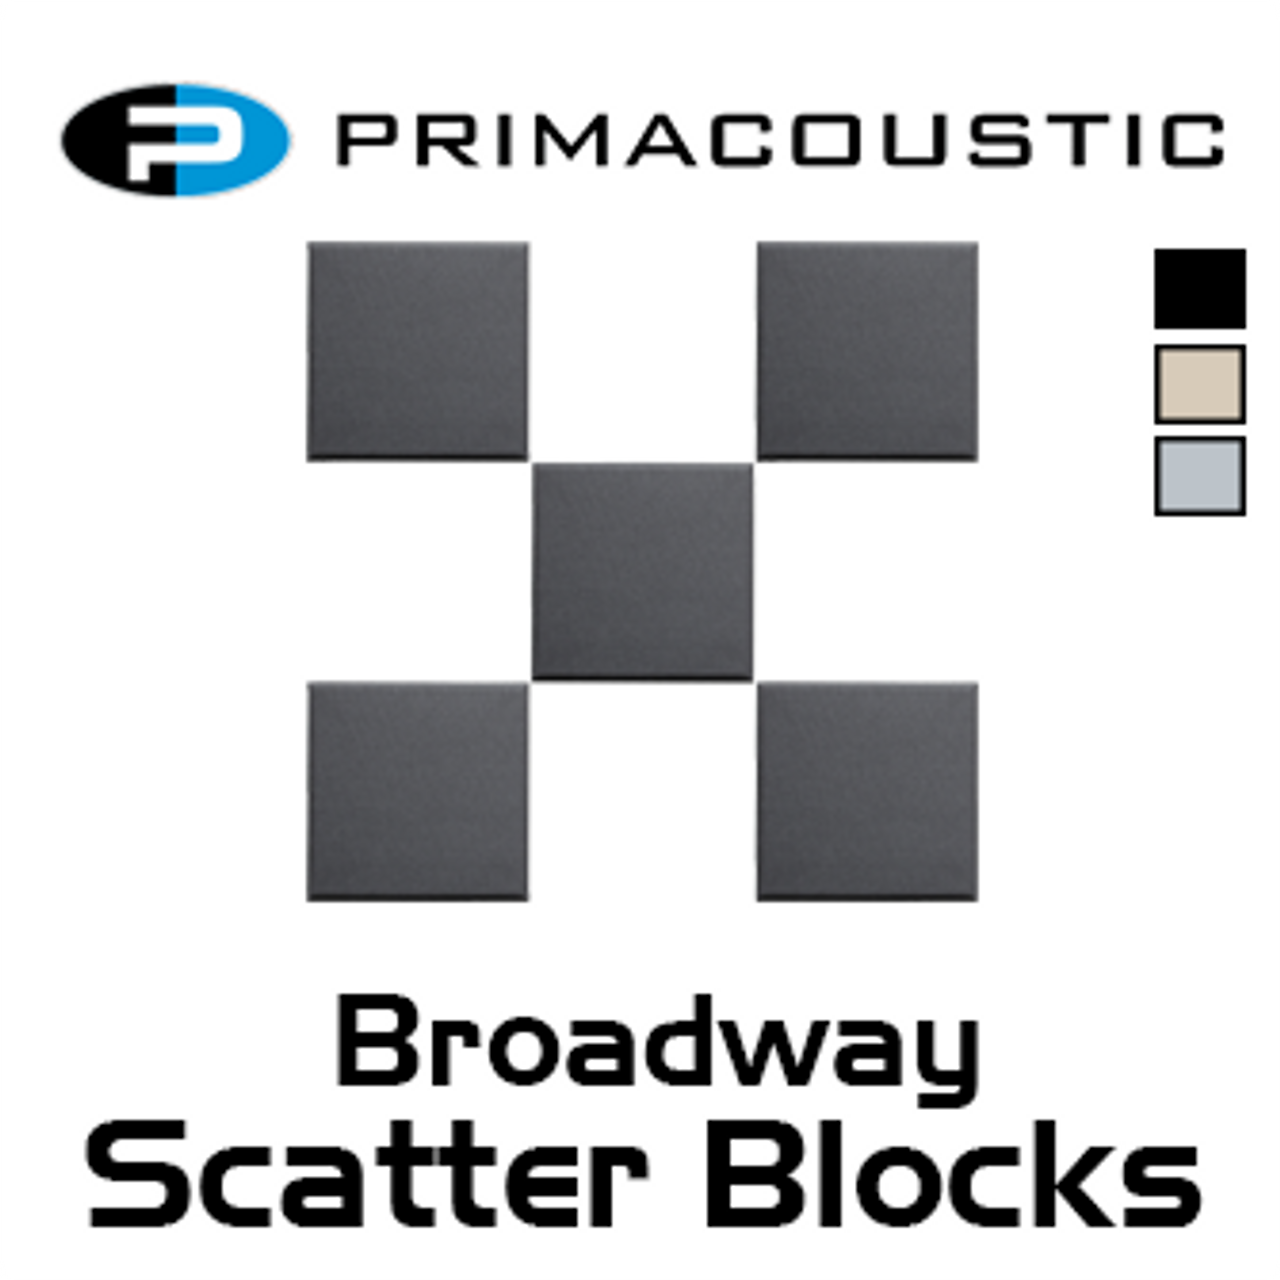 "Primacoustic Broadway Scatter Blocks 12"" x 12"" x 1"" Panels (24pc Set)"